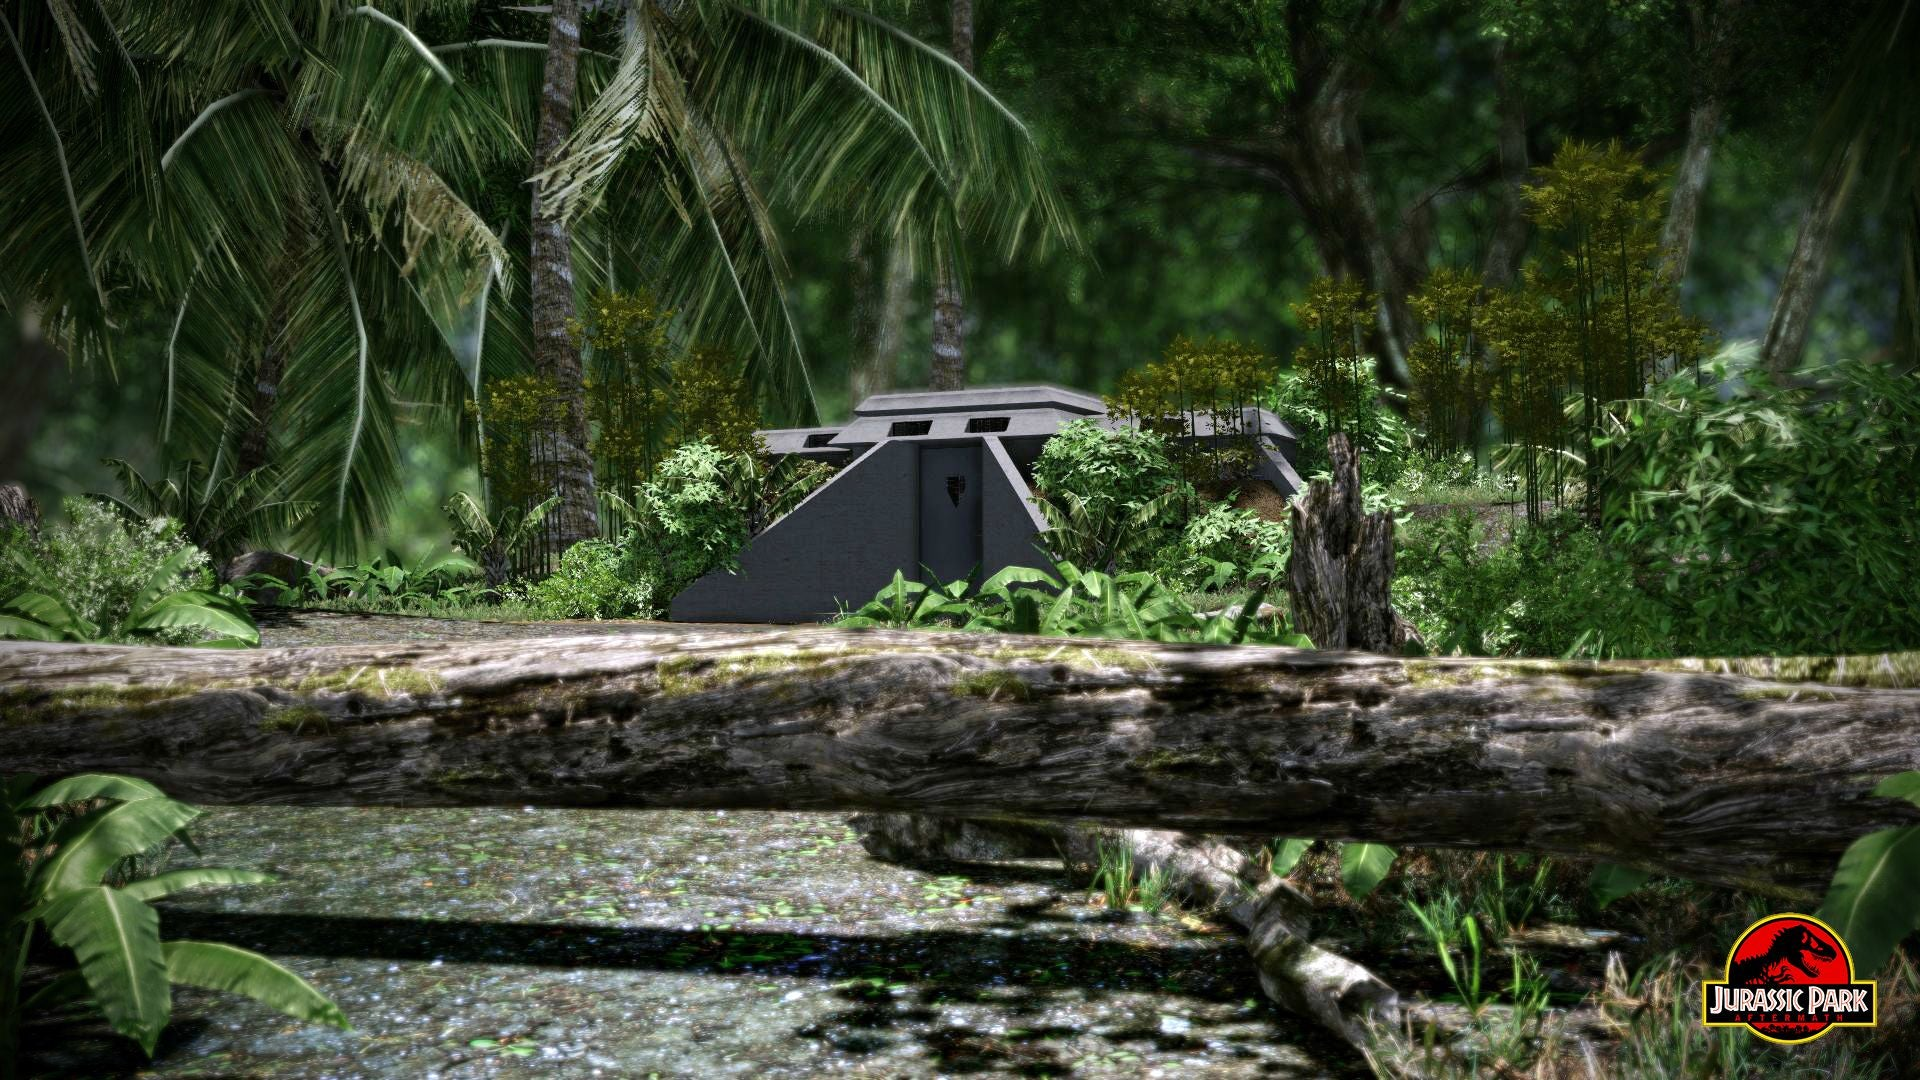 Jurassic Park Fan Project Is The Dinosaur Game I've Always Wanted